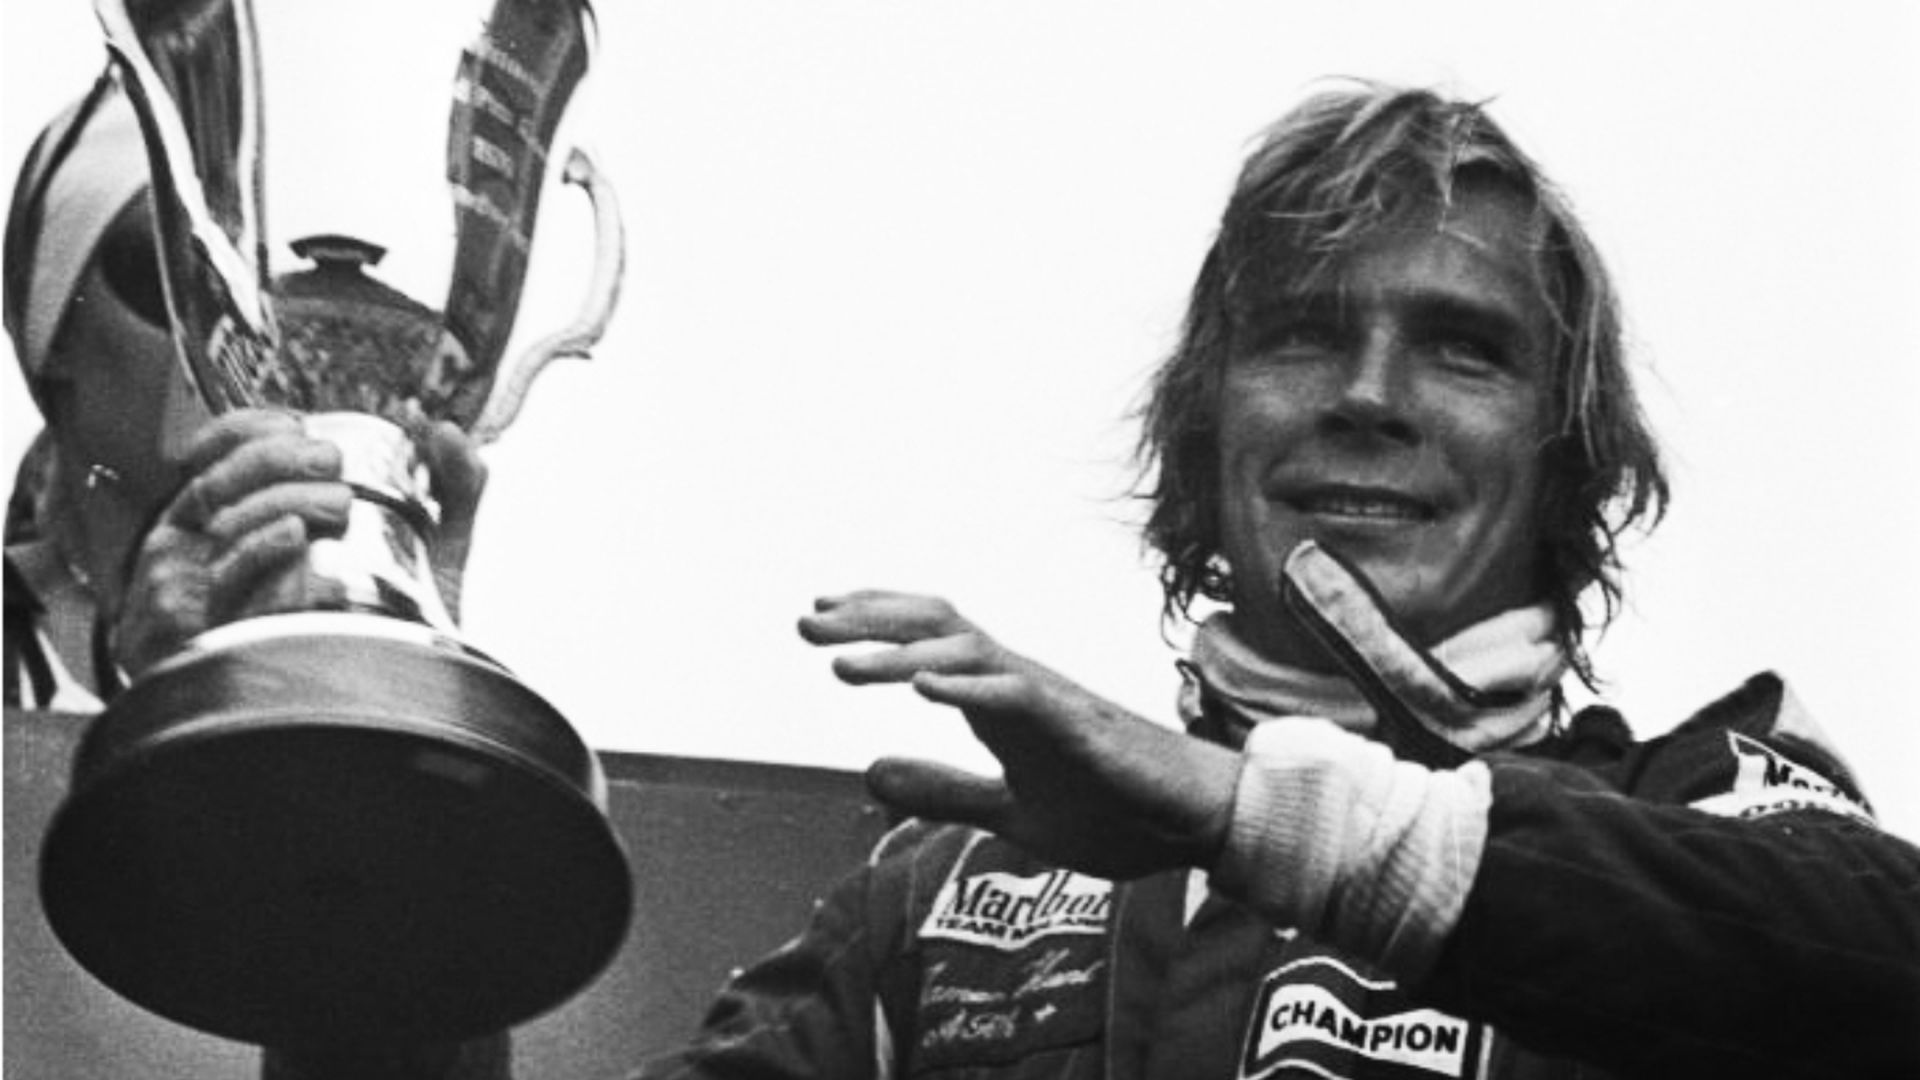 Howstuffworks: Can You Name These Famous Formula 1 Drivers from a Photo?